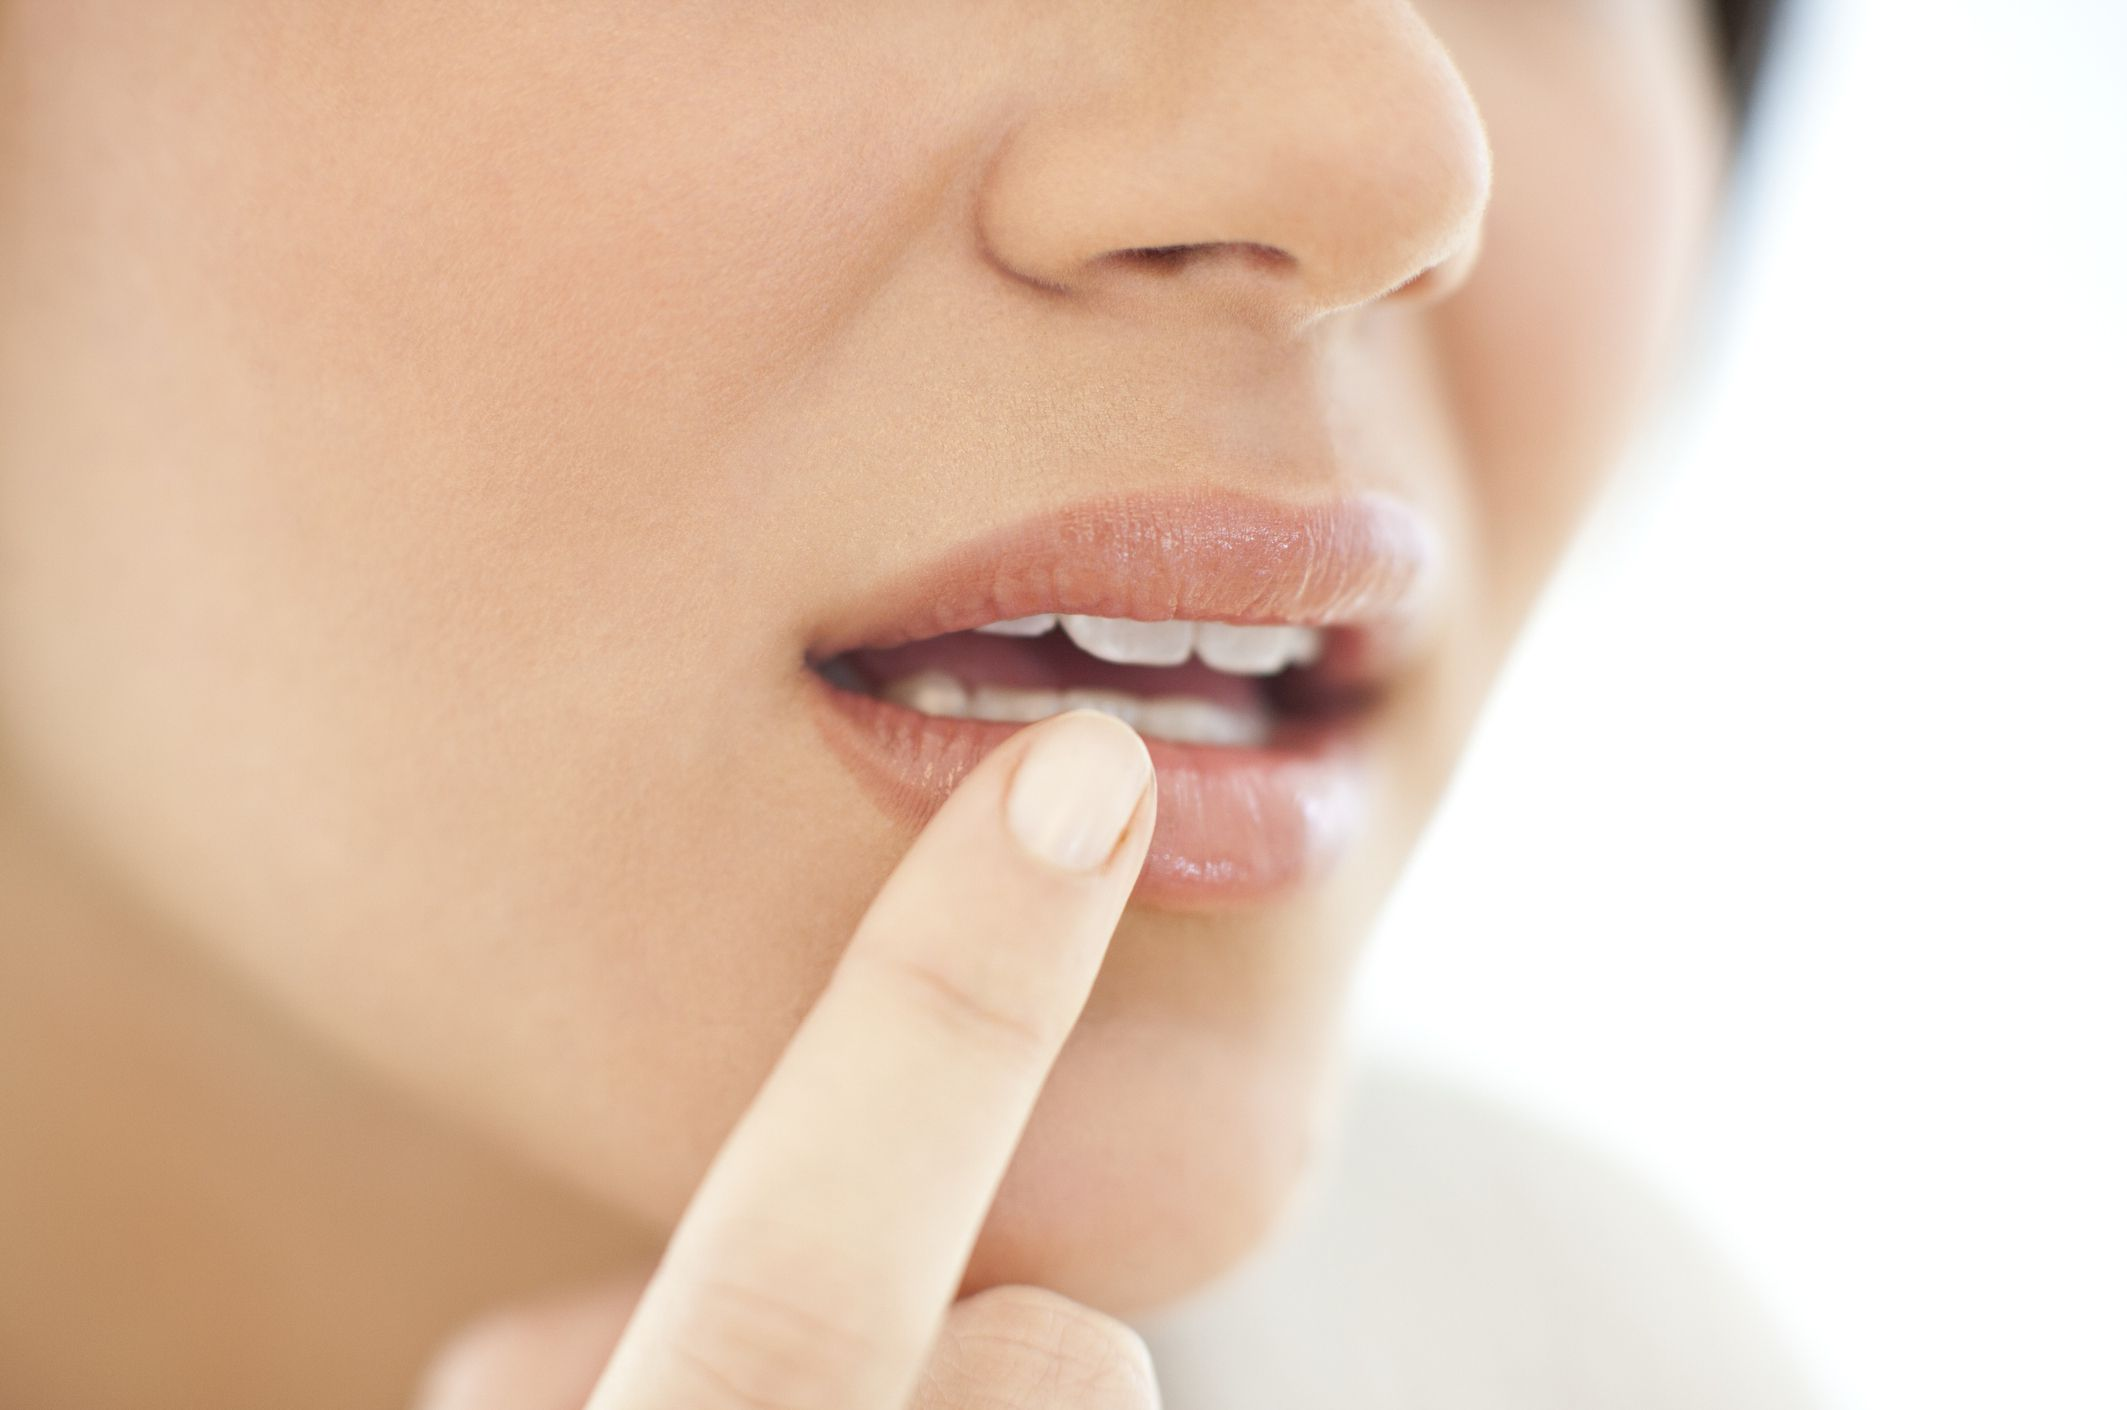 woman looking at mouth